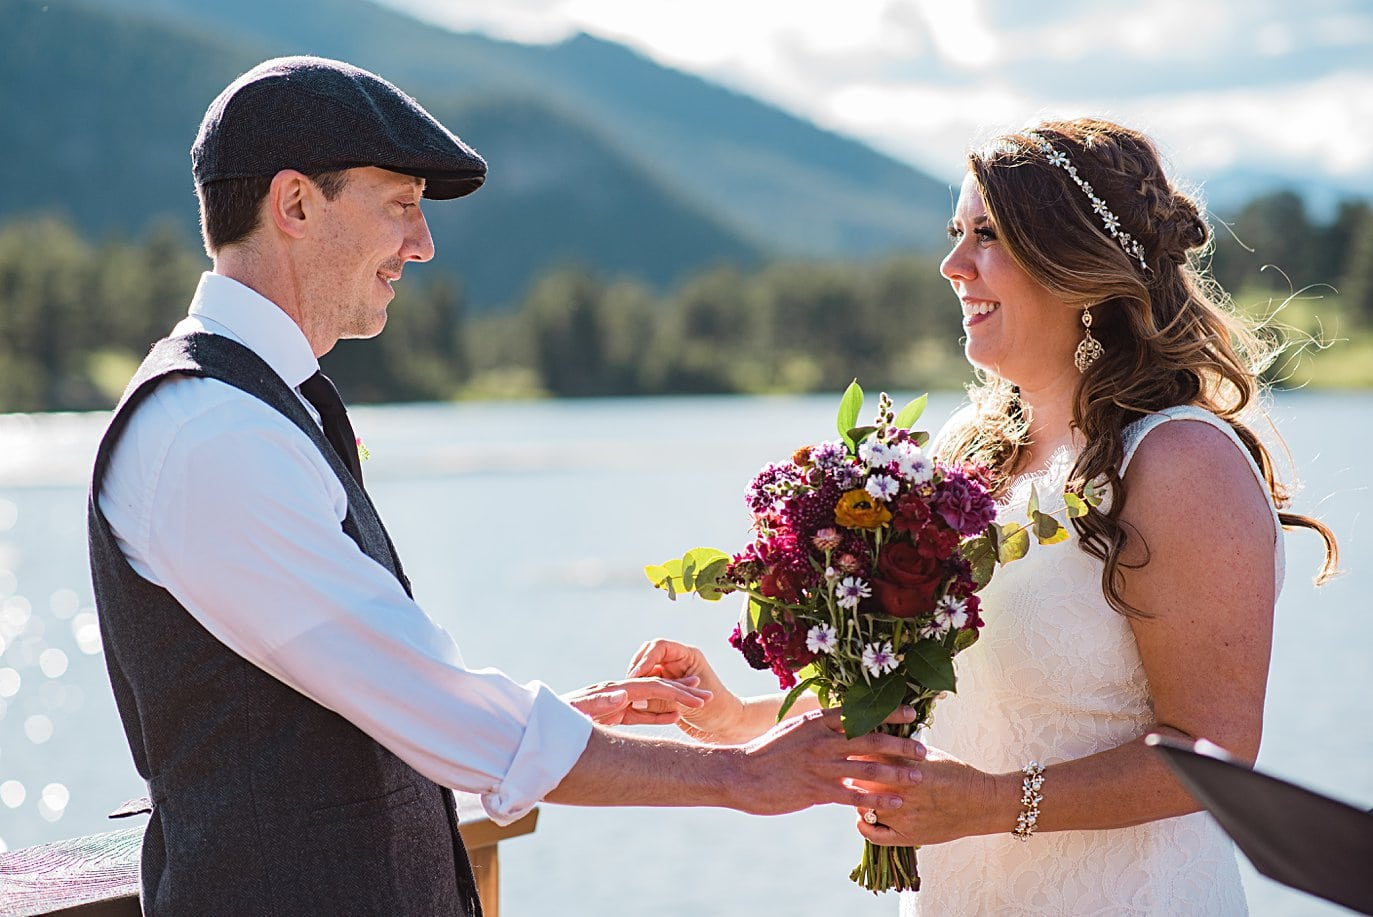 bride and groom ring exchange at Lily Lake Elopement by Estes Park elopement photographer Jennie Crate